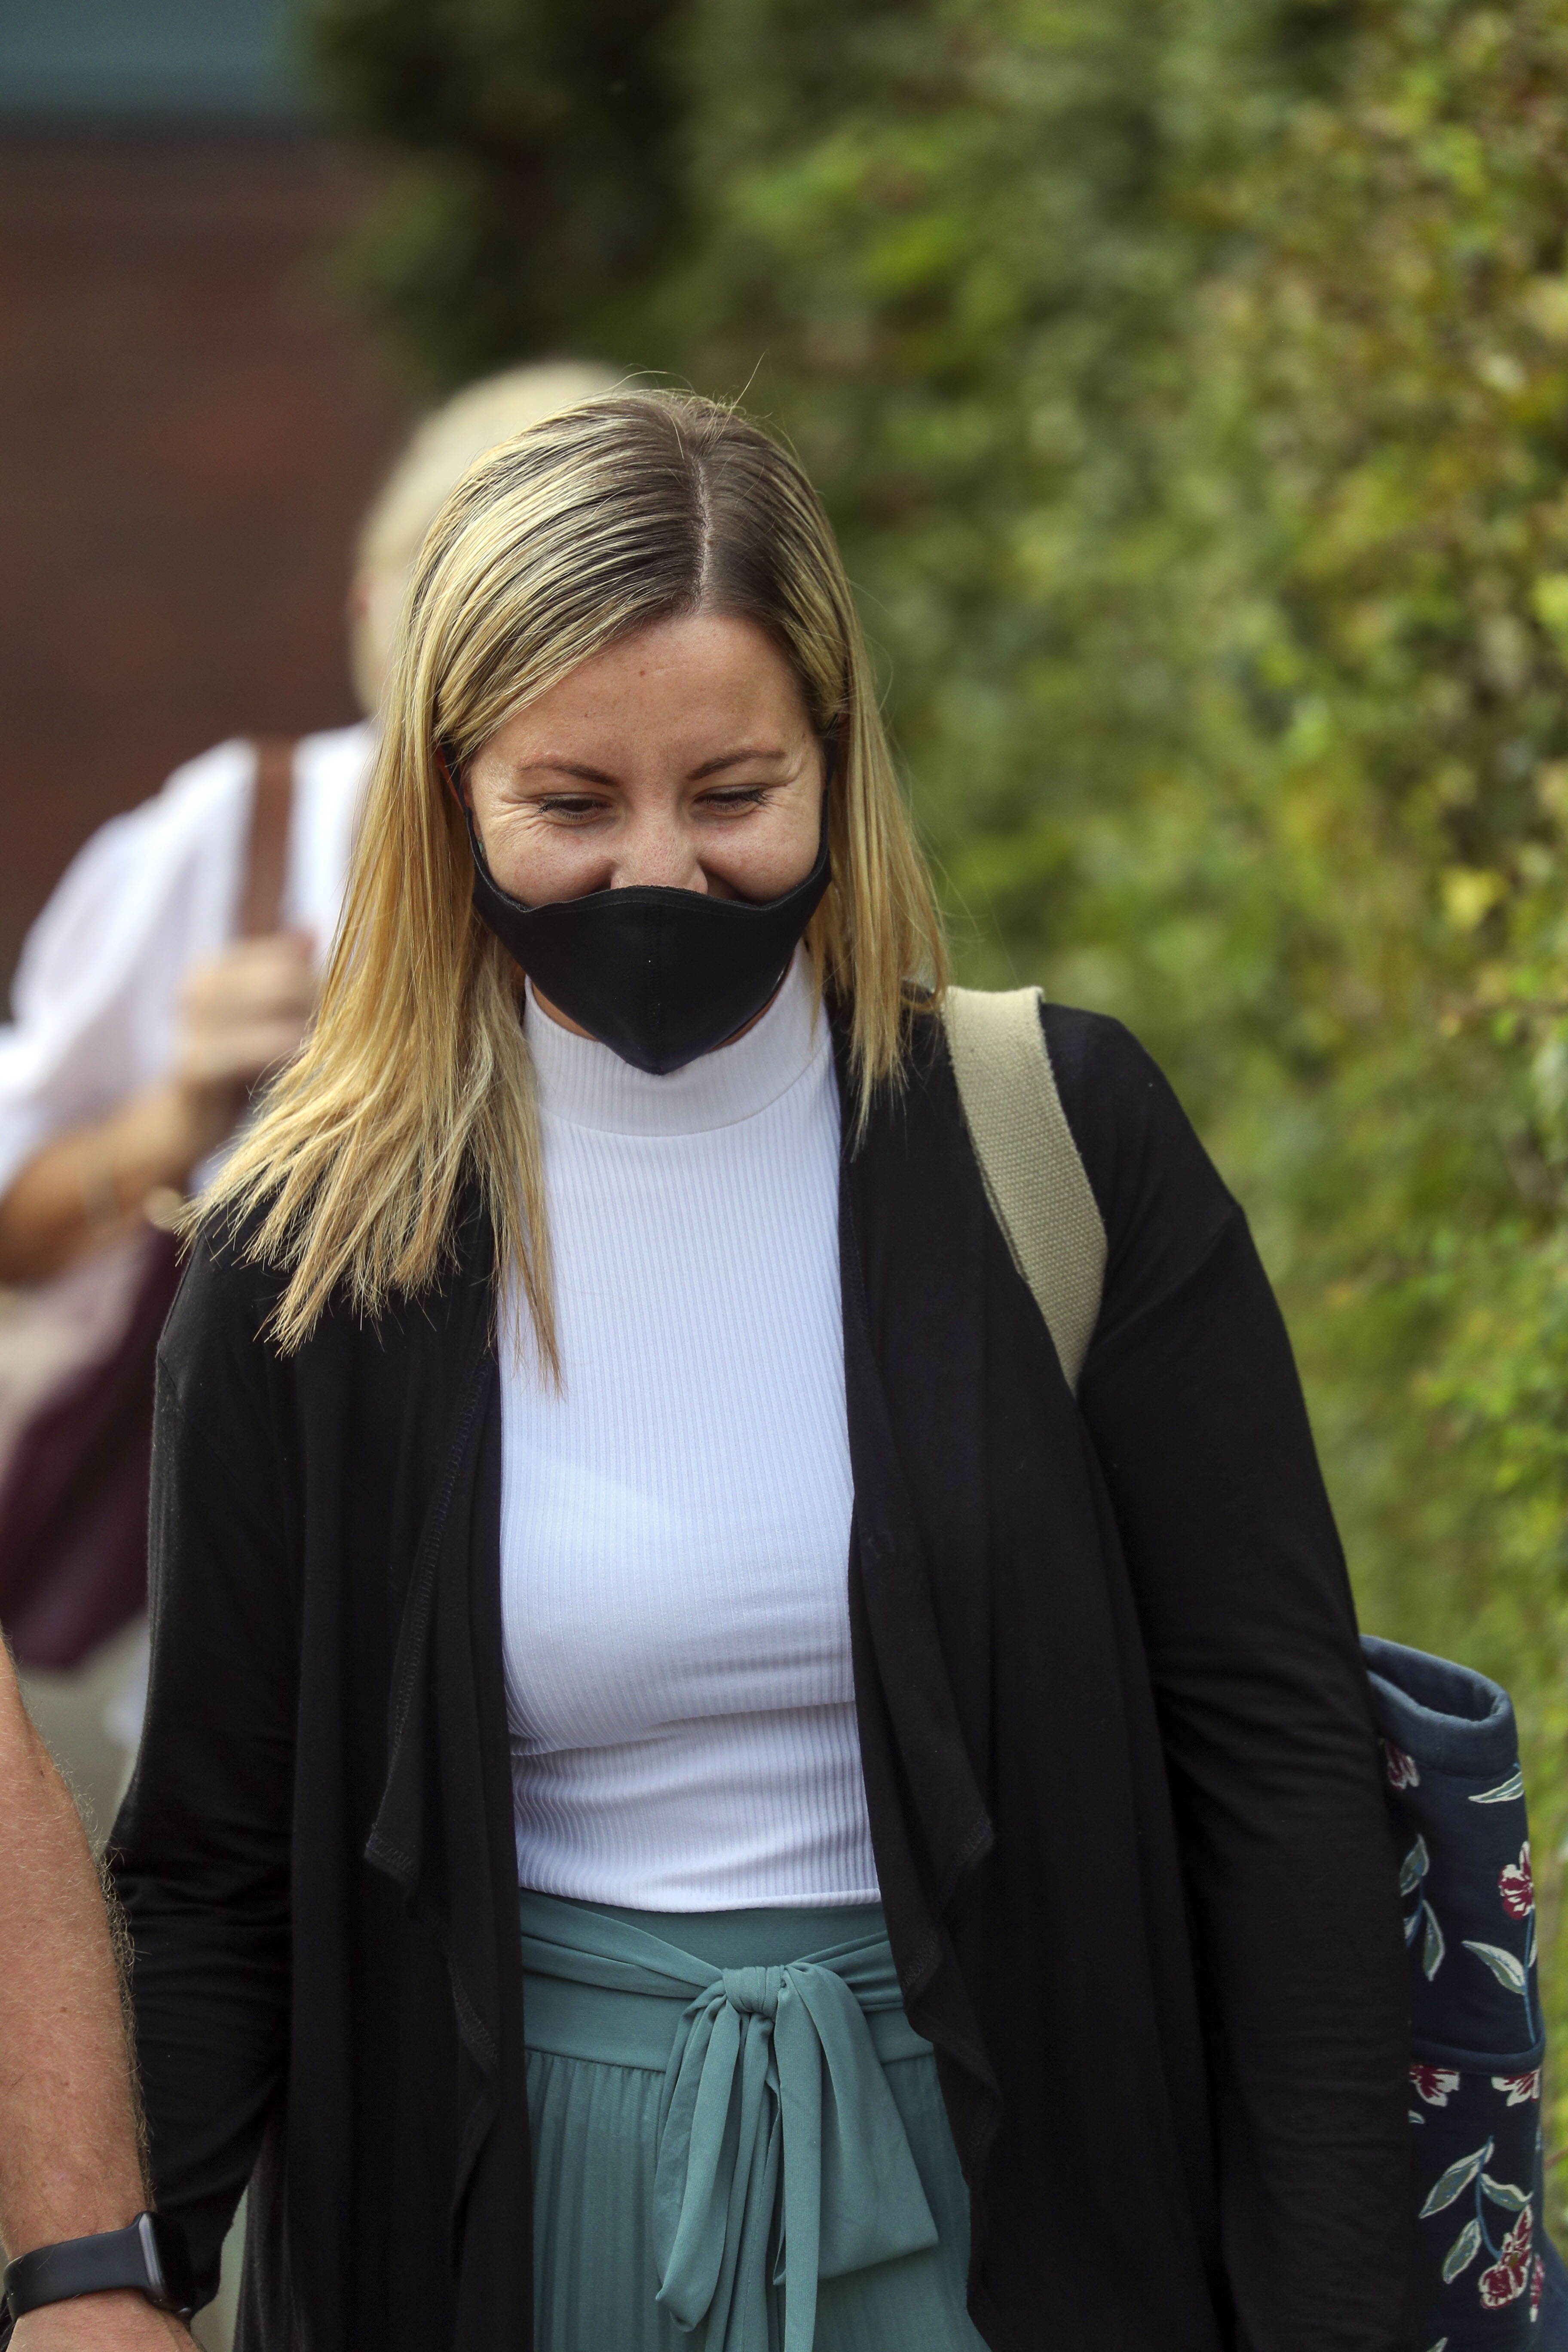 Teacher Kandice Barber, 35, leaves Aylesbury Crown Court, Buckinghamshire, after being found guilty of two sex offence charges related to sending topless Snapchat pictures to a 15-year-old student. The jury were unable to reach verdicts on three more serious charges of causing or inciting a child aged under 16 to engage in a sexual act.